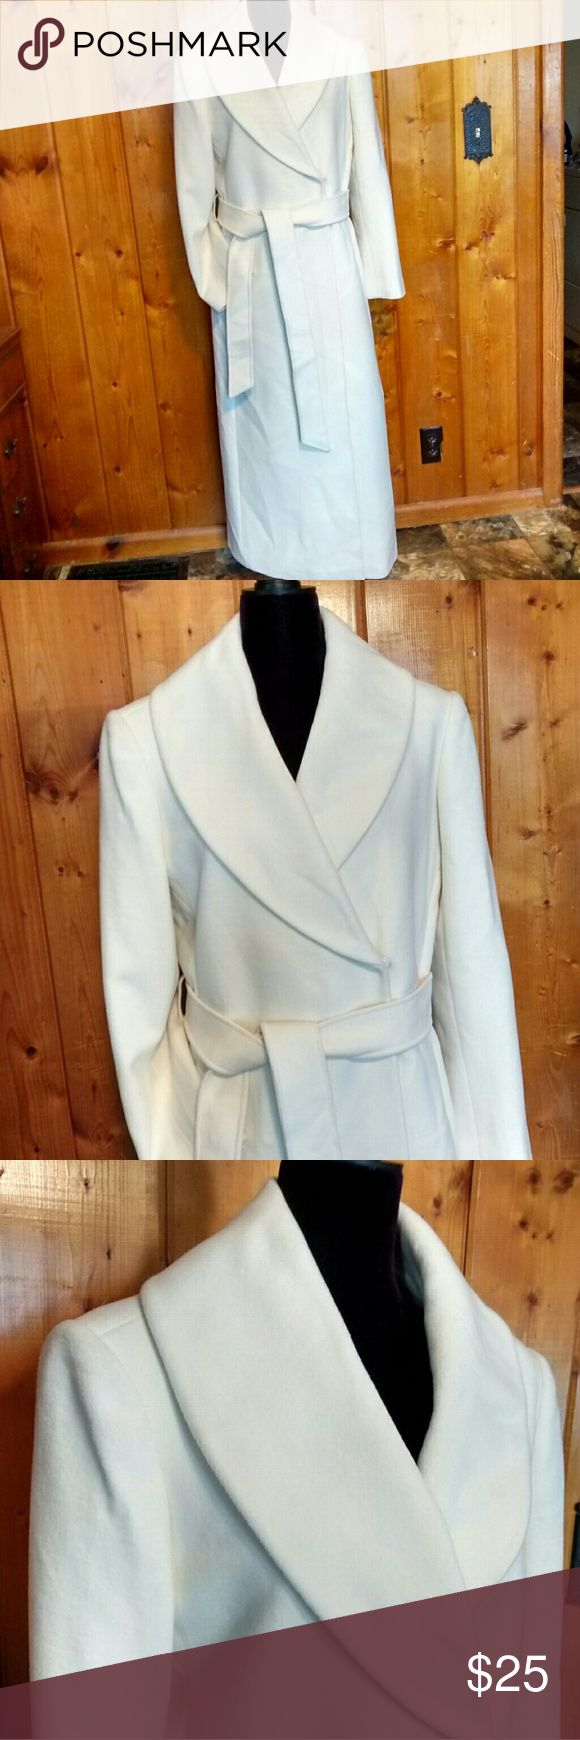 Plus size Spiegel white trench coat Plus size Spiegel white trench coat. Never worn. There are a few  tiny little spots that may be a moth bite. On the right lapel.  ( See picture 5.) They are tiny and not holes but I wanted to note them. This is a beautiful addition to any wardrobe !! Spiegel Jackets & Coats Trench Coats